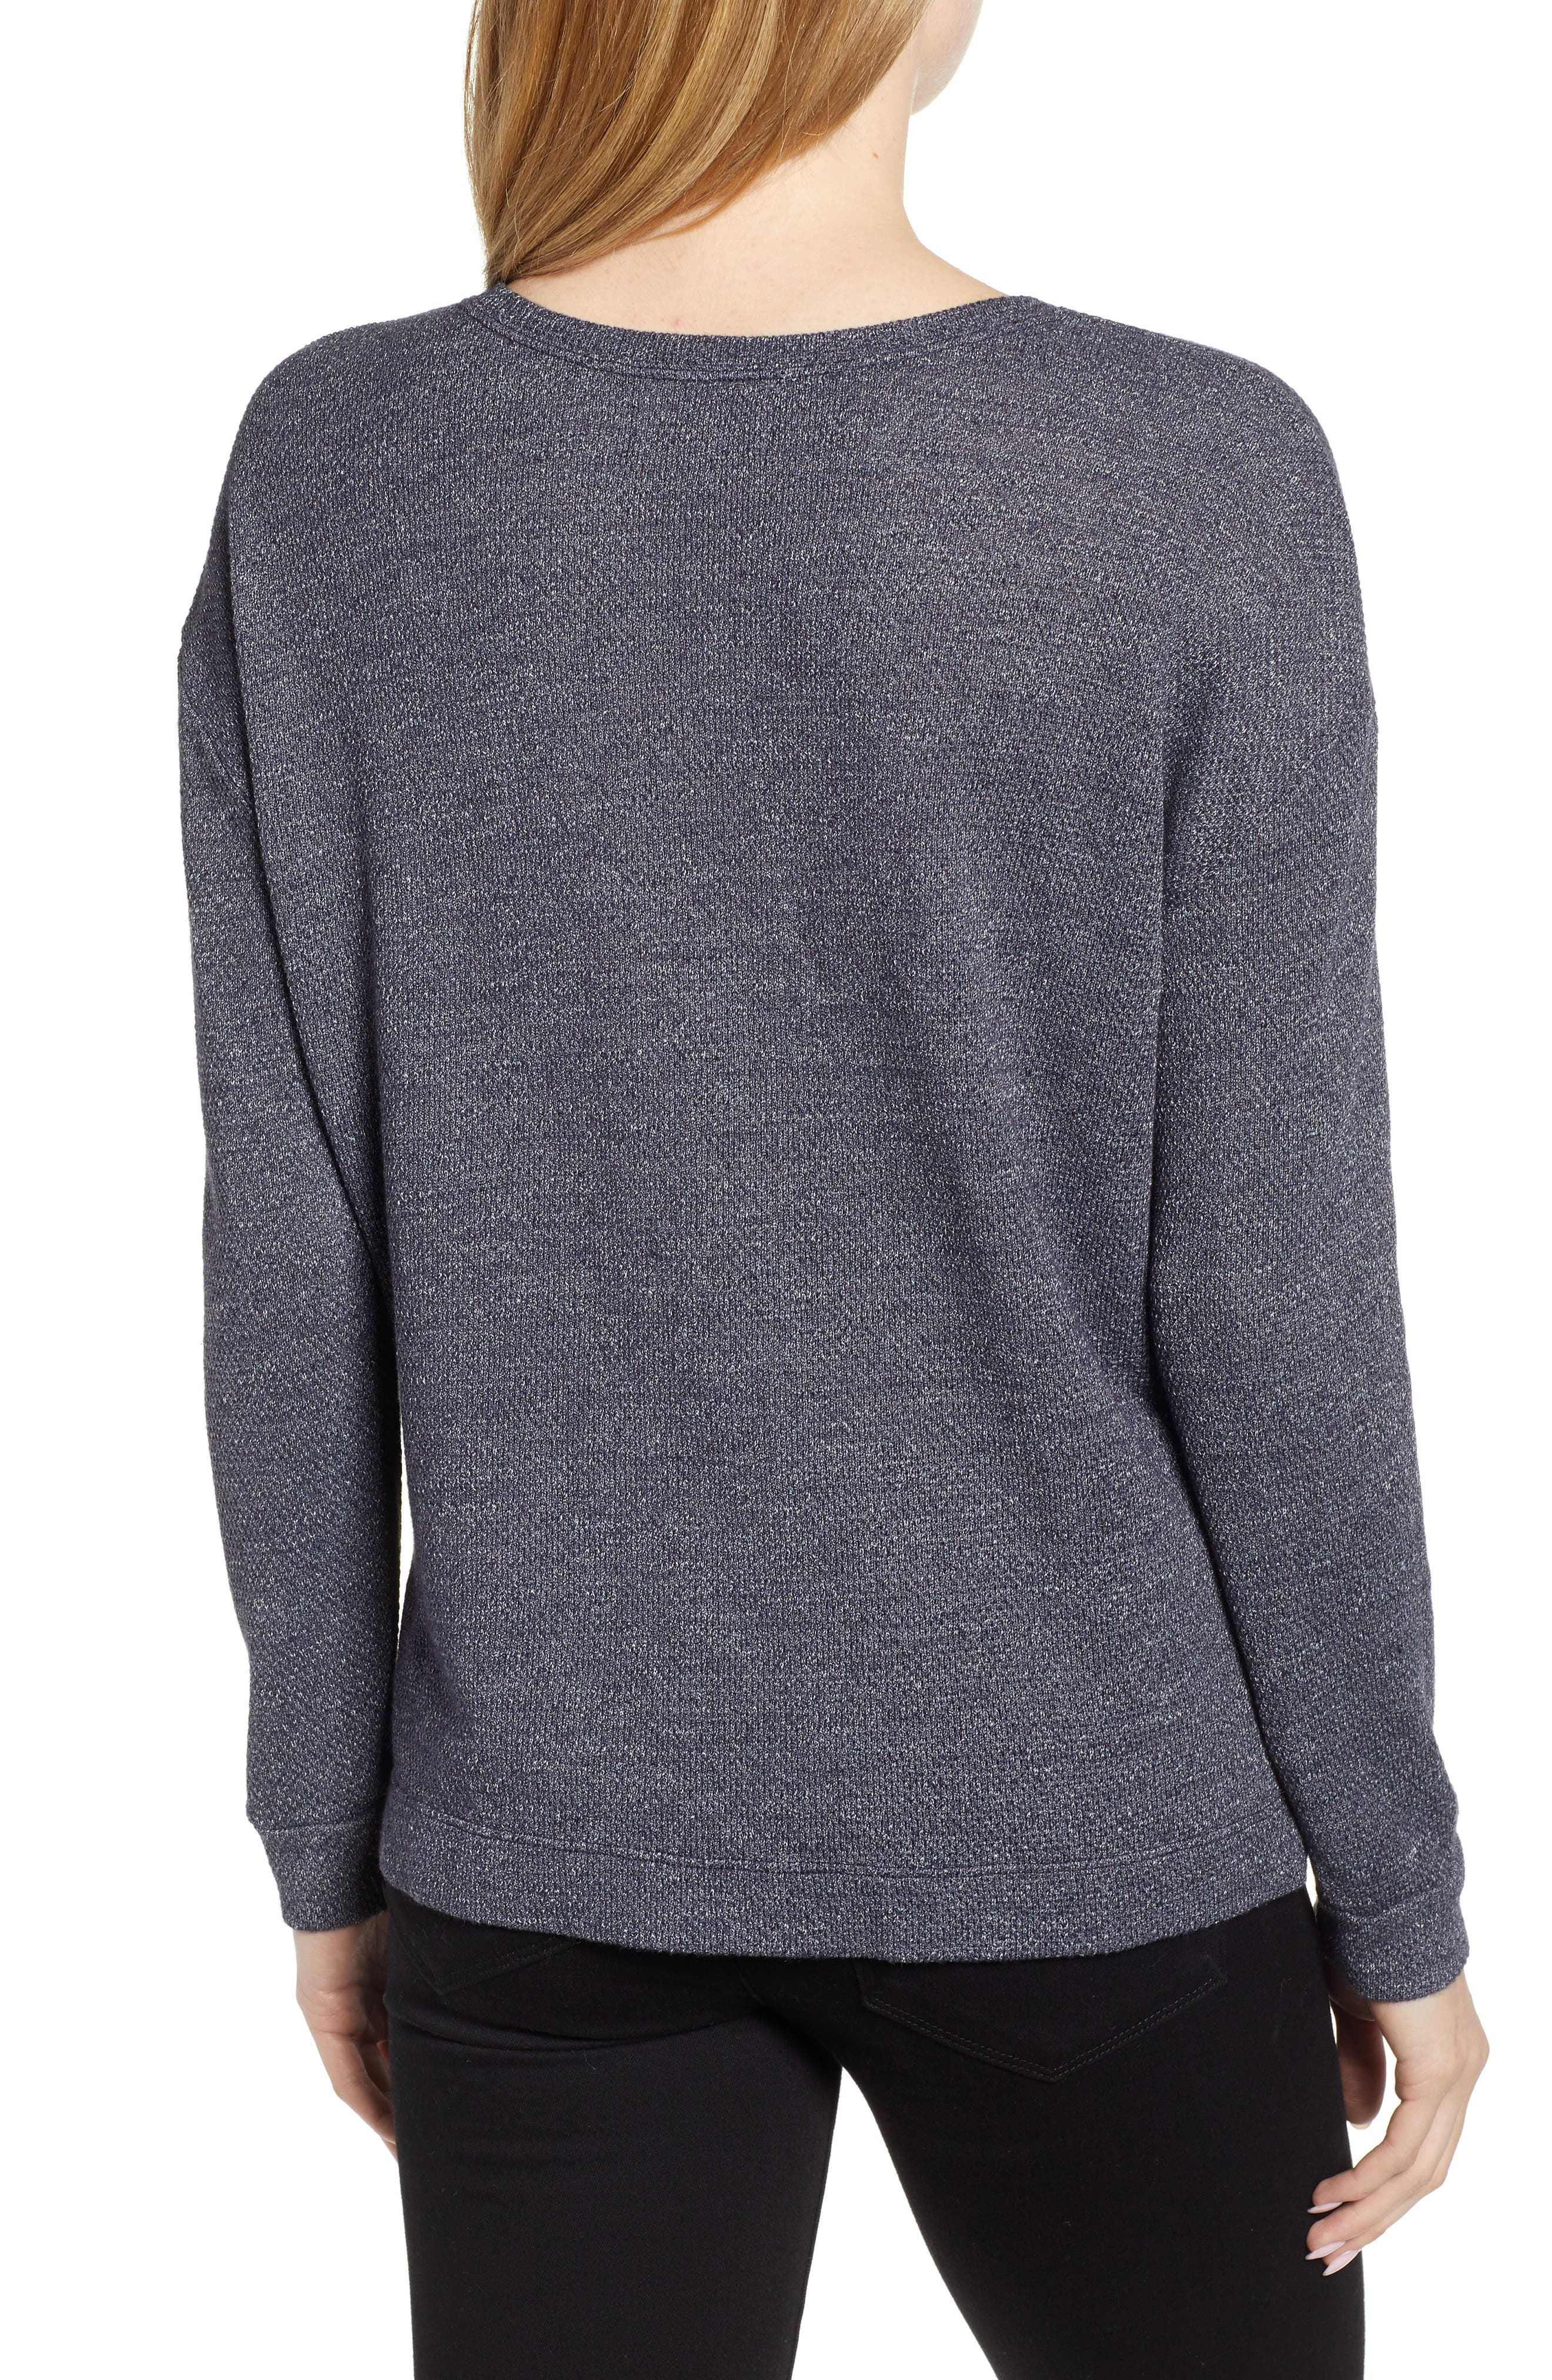 Thermal Pullover,                             Alternate thumbnail 2, color,                             CADET